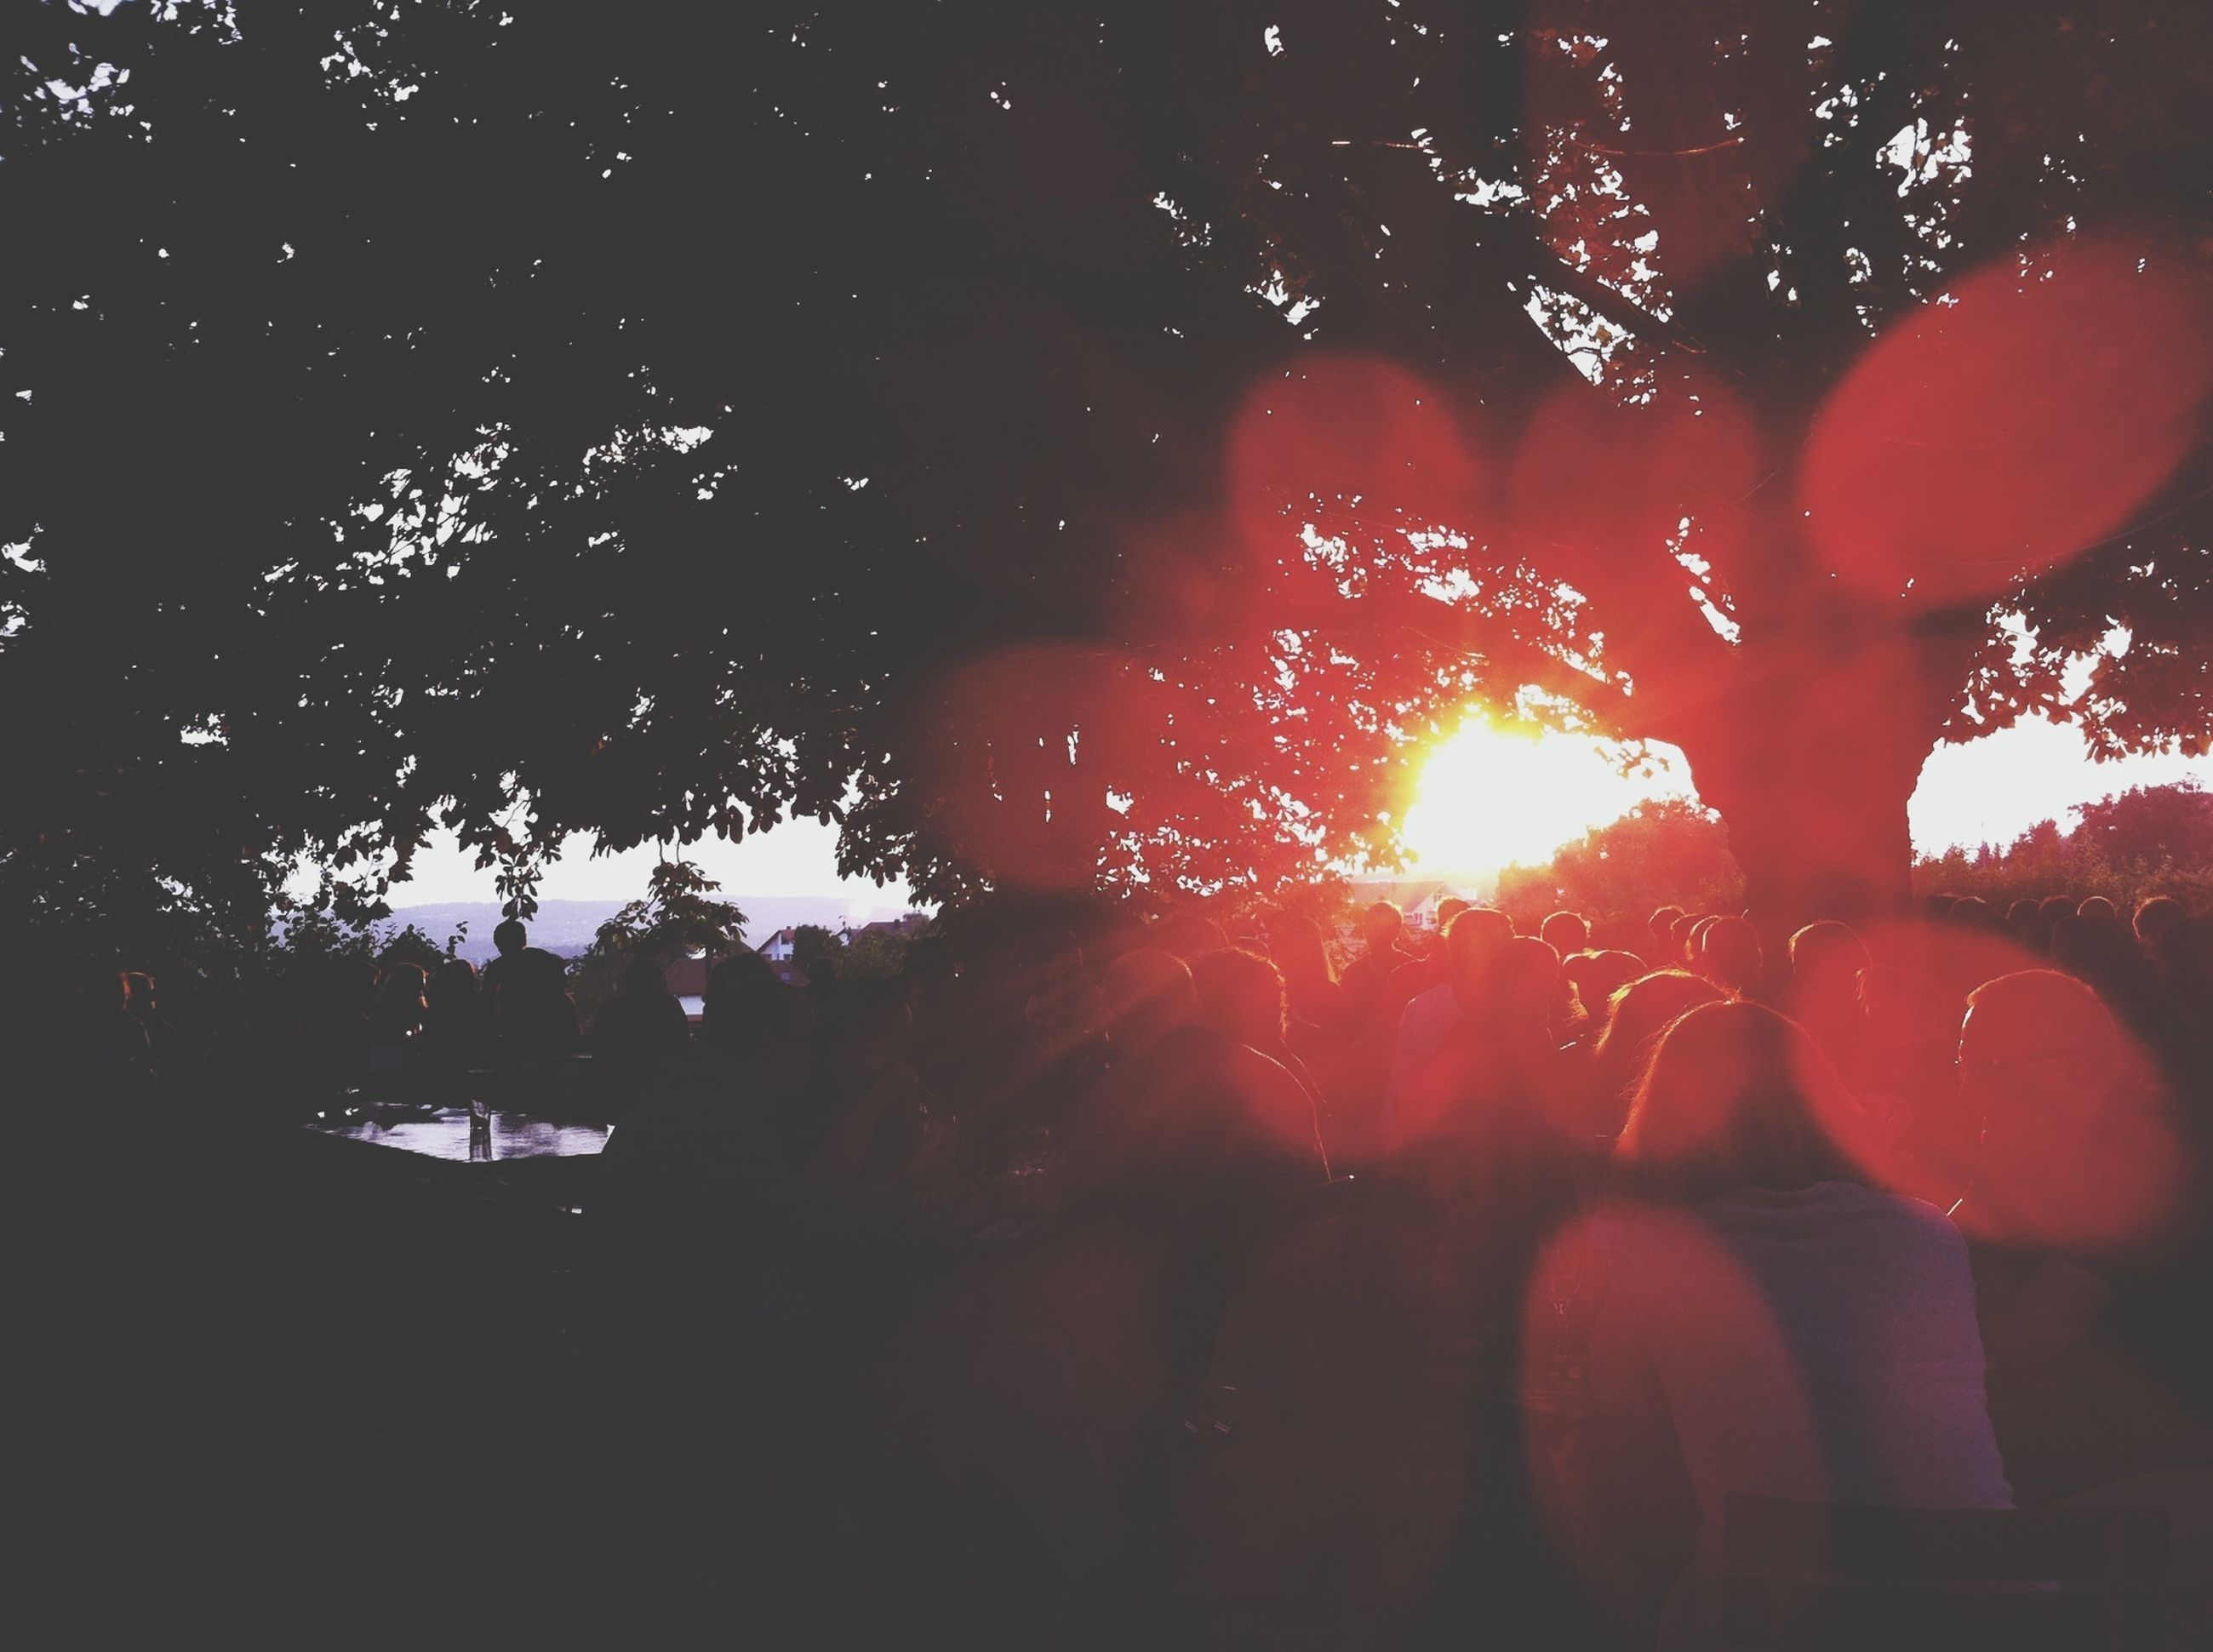 tree, silhouette, branch, sunset, sunlight, sun, low angle view, nature, orange color, sunbeam, growth, lens flare, outdoors, tranquility, beauty in nature, sky, back lit, tree trunk, scenics, no people